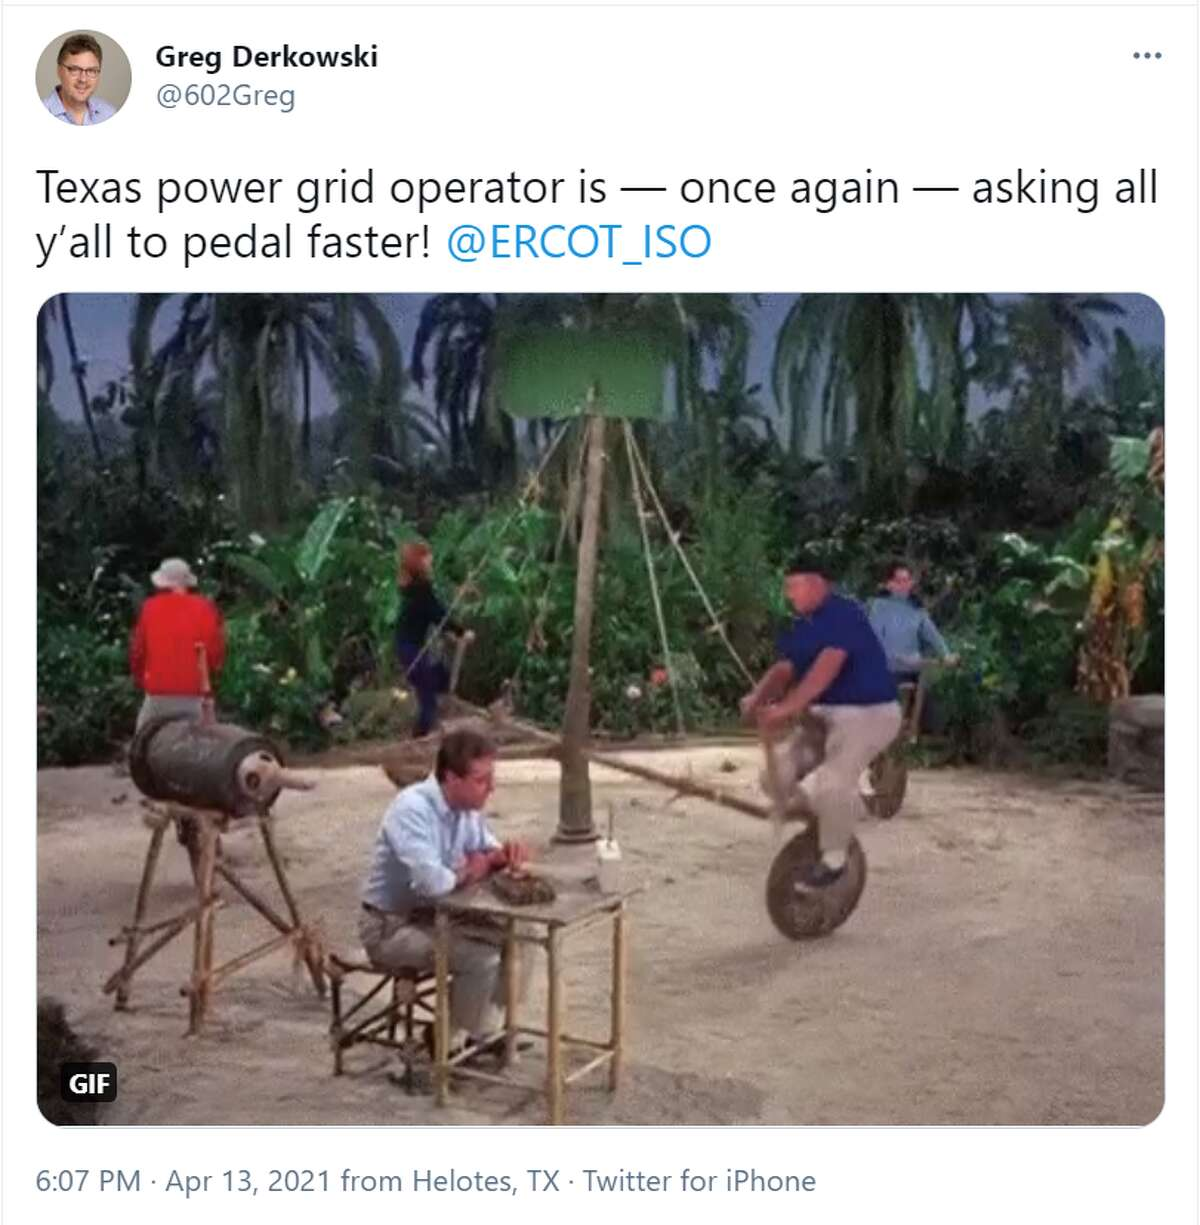 @602Greg: Texas power grid operator is - once again - asking all y'all to pedal faster!@ERCOT_ISO